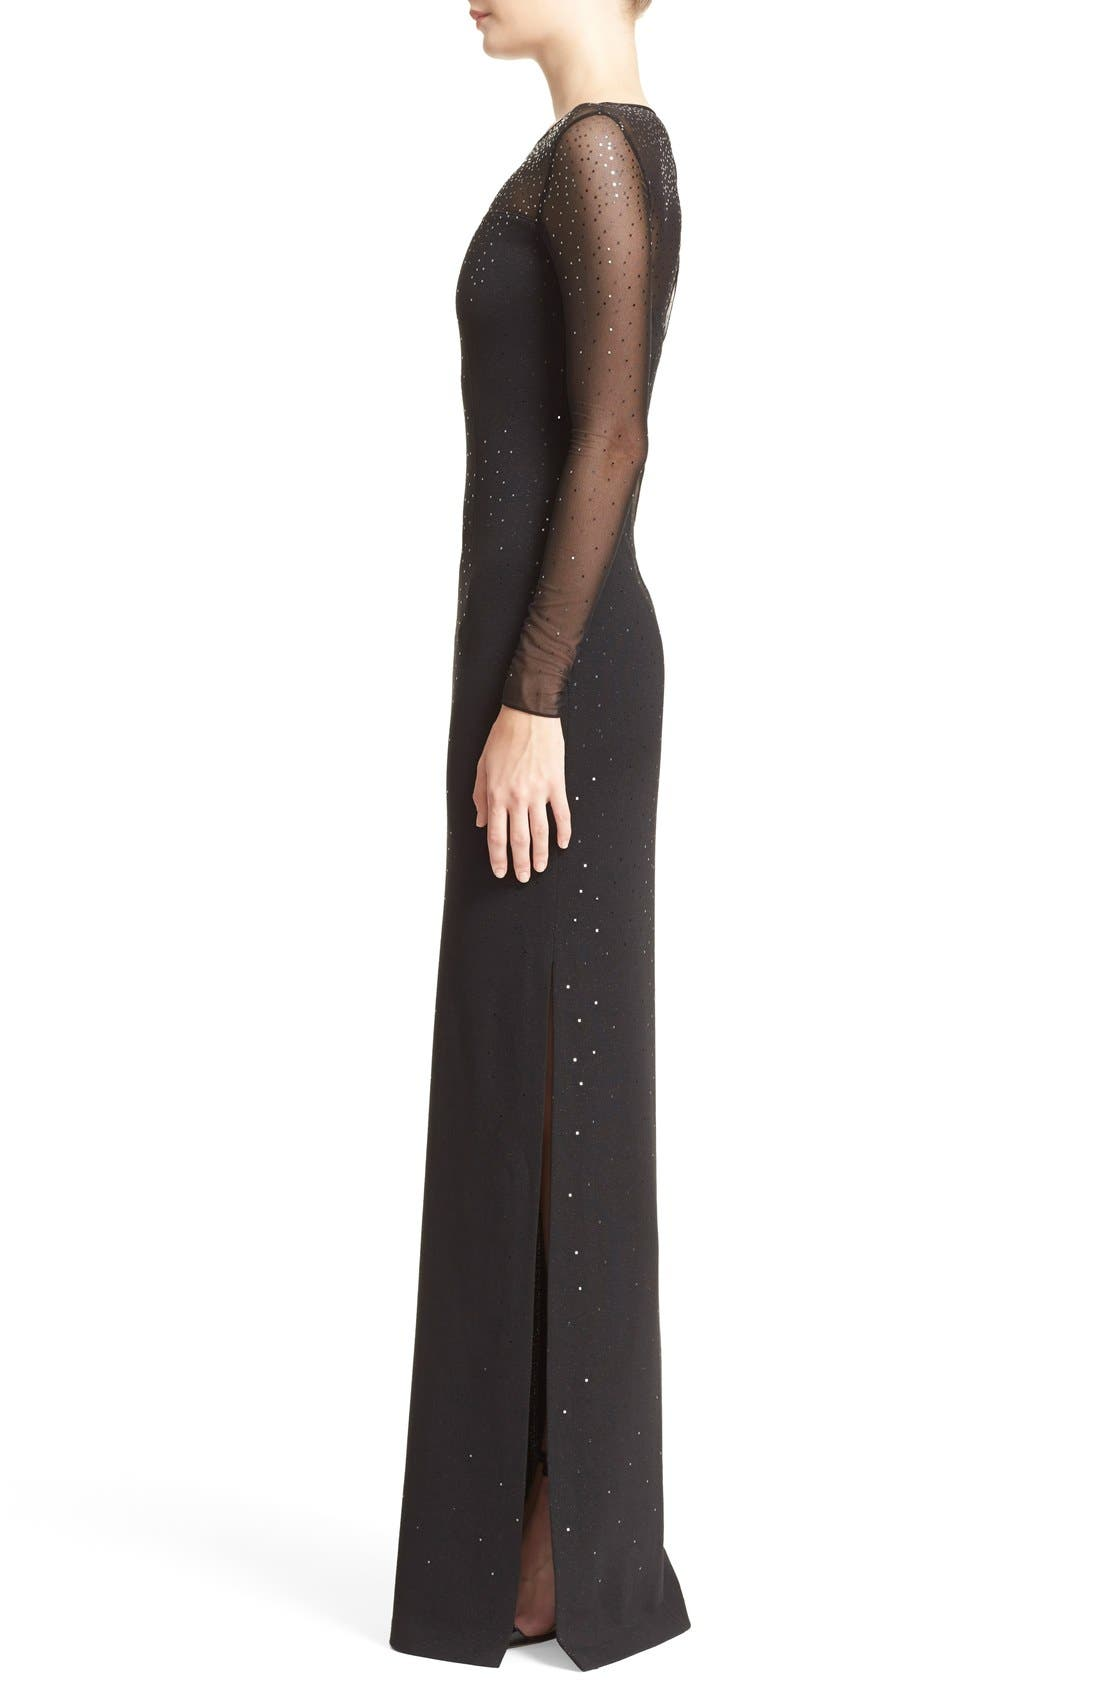 ST. JOHN COLLECTION, Embellished Shimmer Milano Knit Gown, Alternate thumbnail 6, color, 001